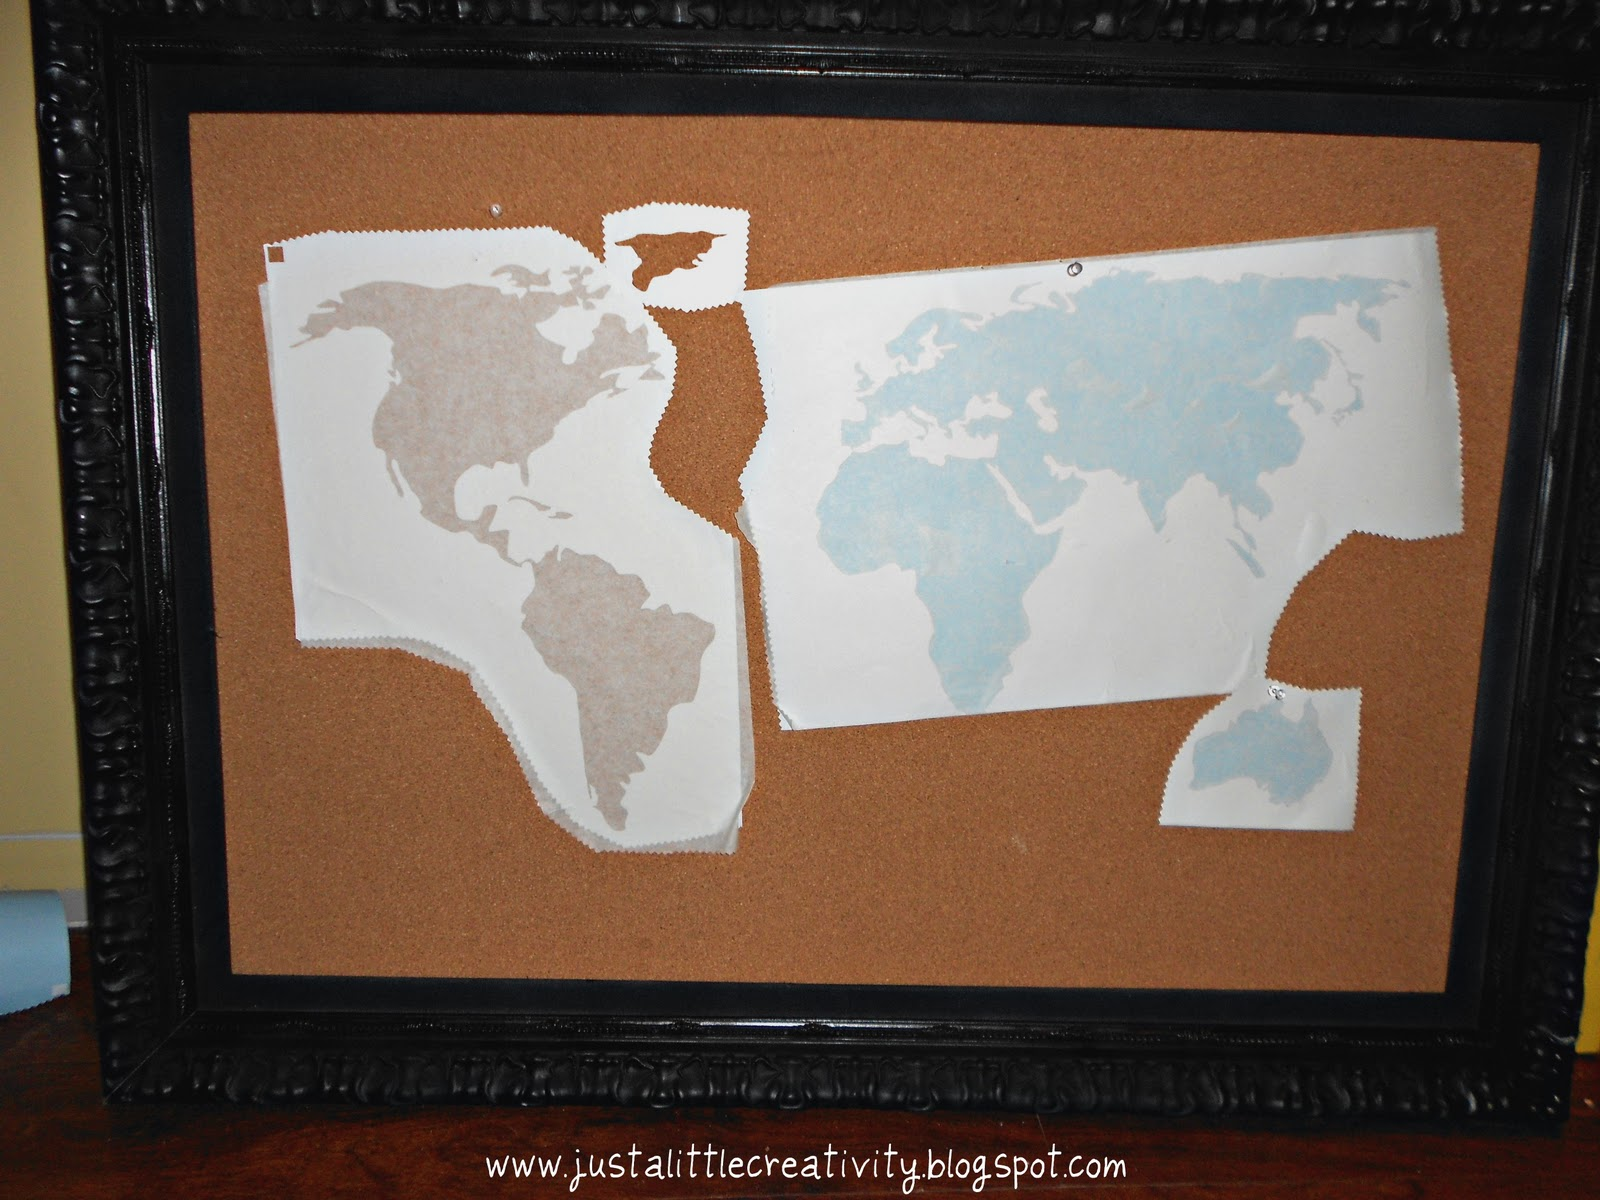 Travel map cork board ballard inspired knockoff just a little using my new silhouette cameo i cut a map of the world out of vinyl using the vinyl as a stencil i and my three year old helper painted in the gumiabroncs Choice Image